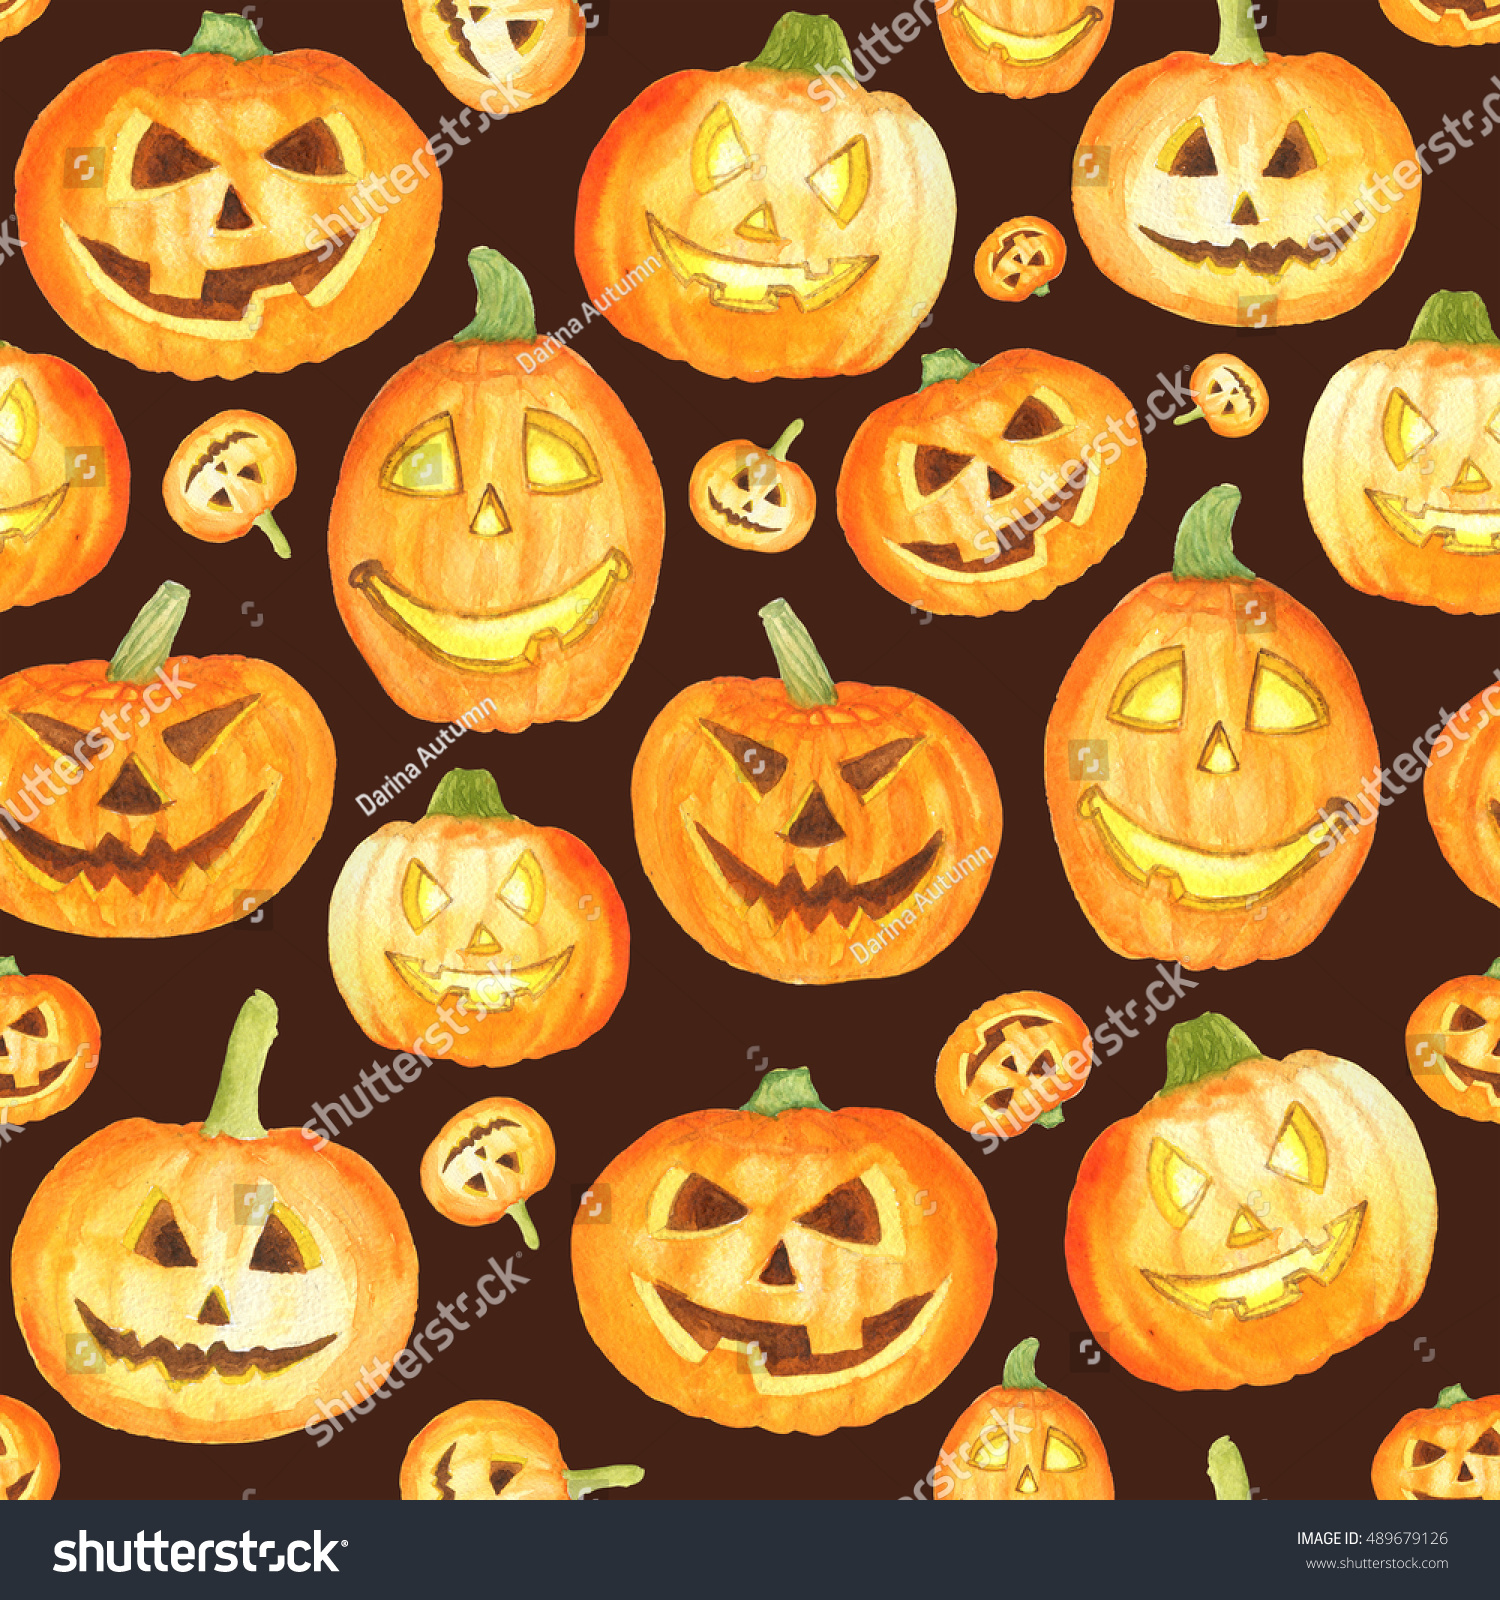 Watercolor halloween pattern with pumpkins for wrapping paper cards